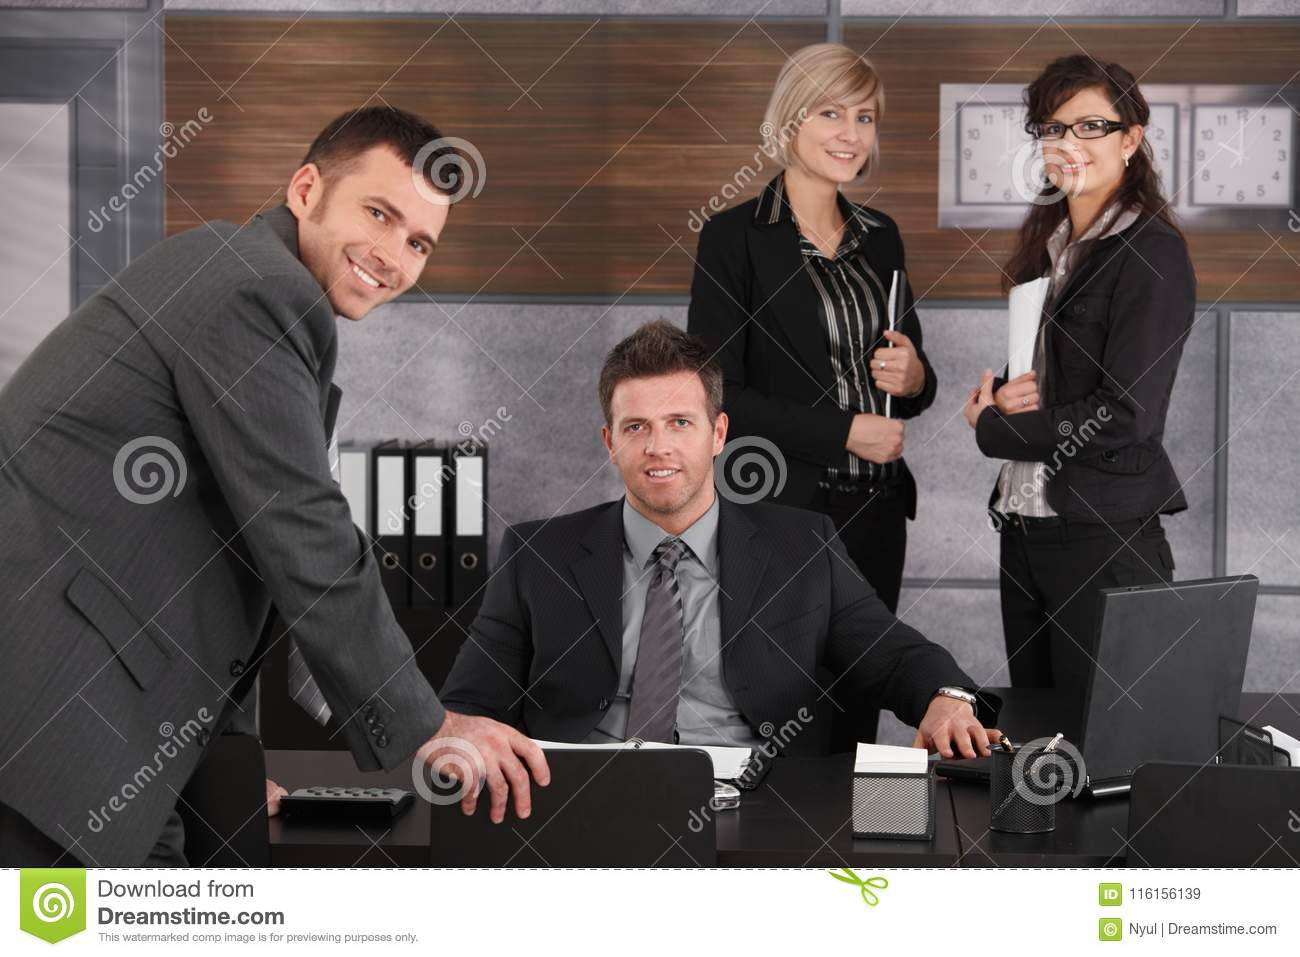 Business executive with team around.